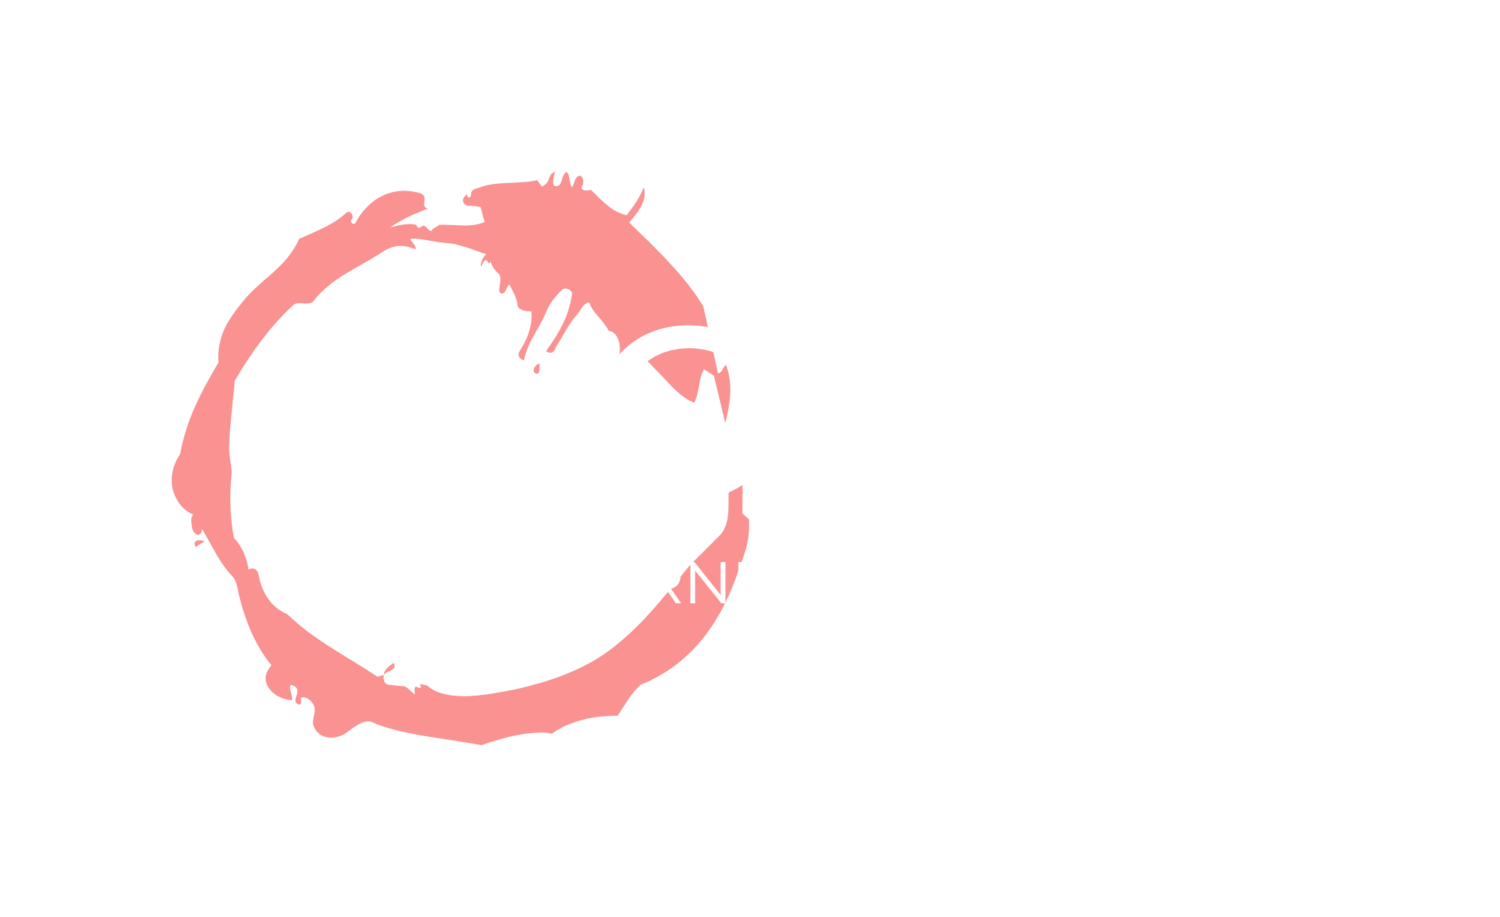 Aimee Garner hair and makeup artist